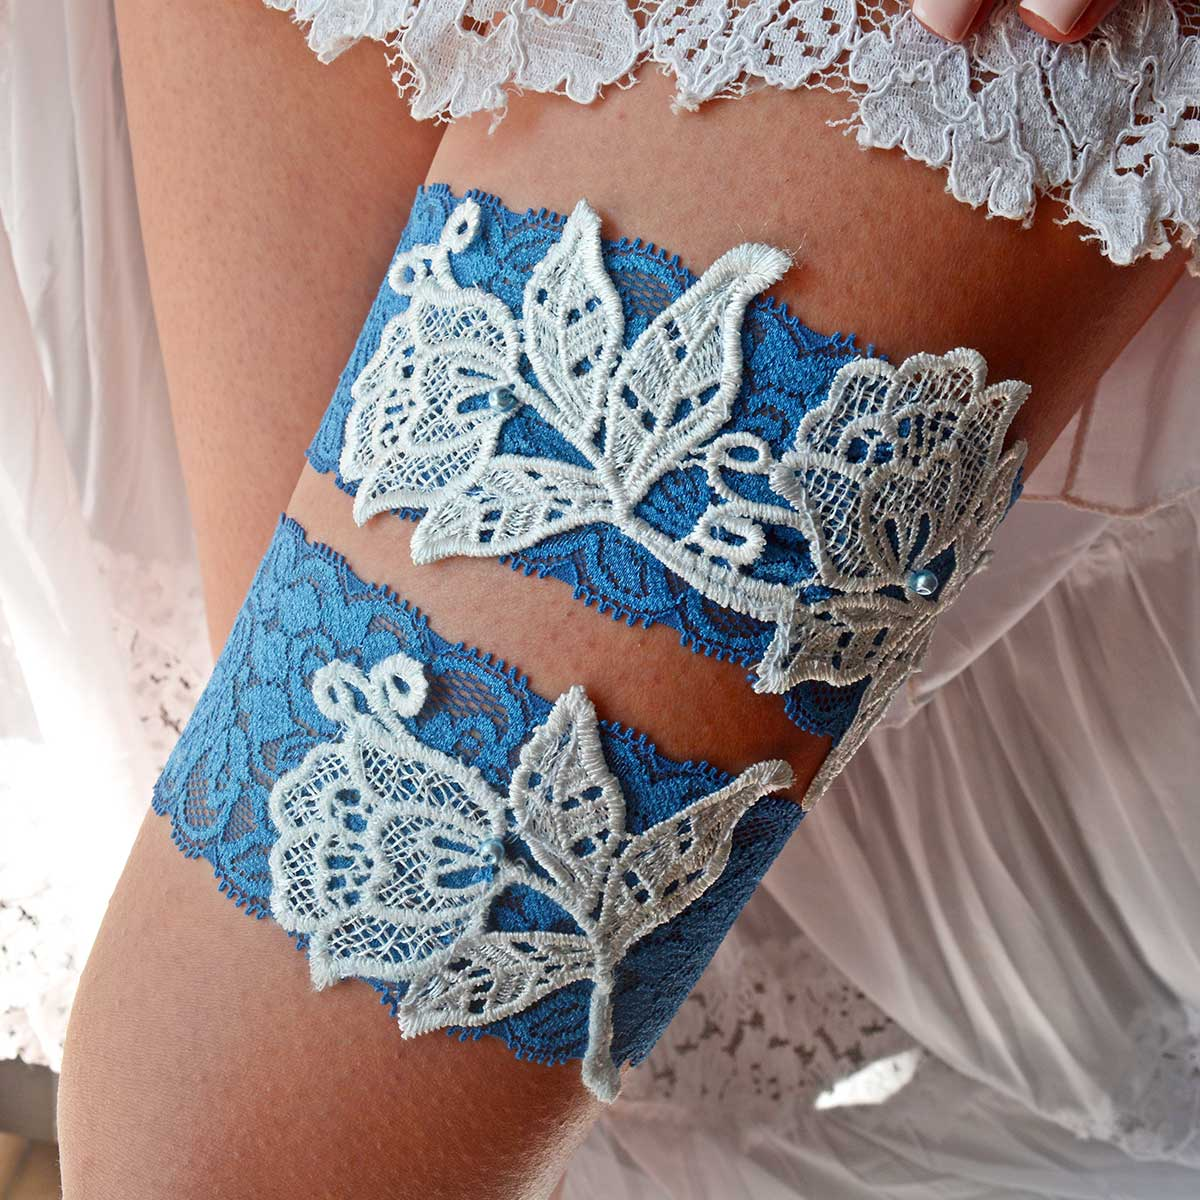 Navy Blue Bridal Garter With Pearls & Flower Applique - Wedding Garter - SuzannaM Designs